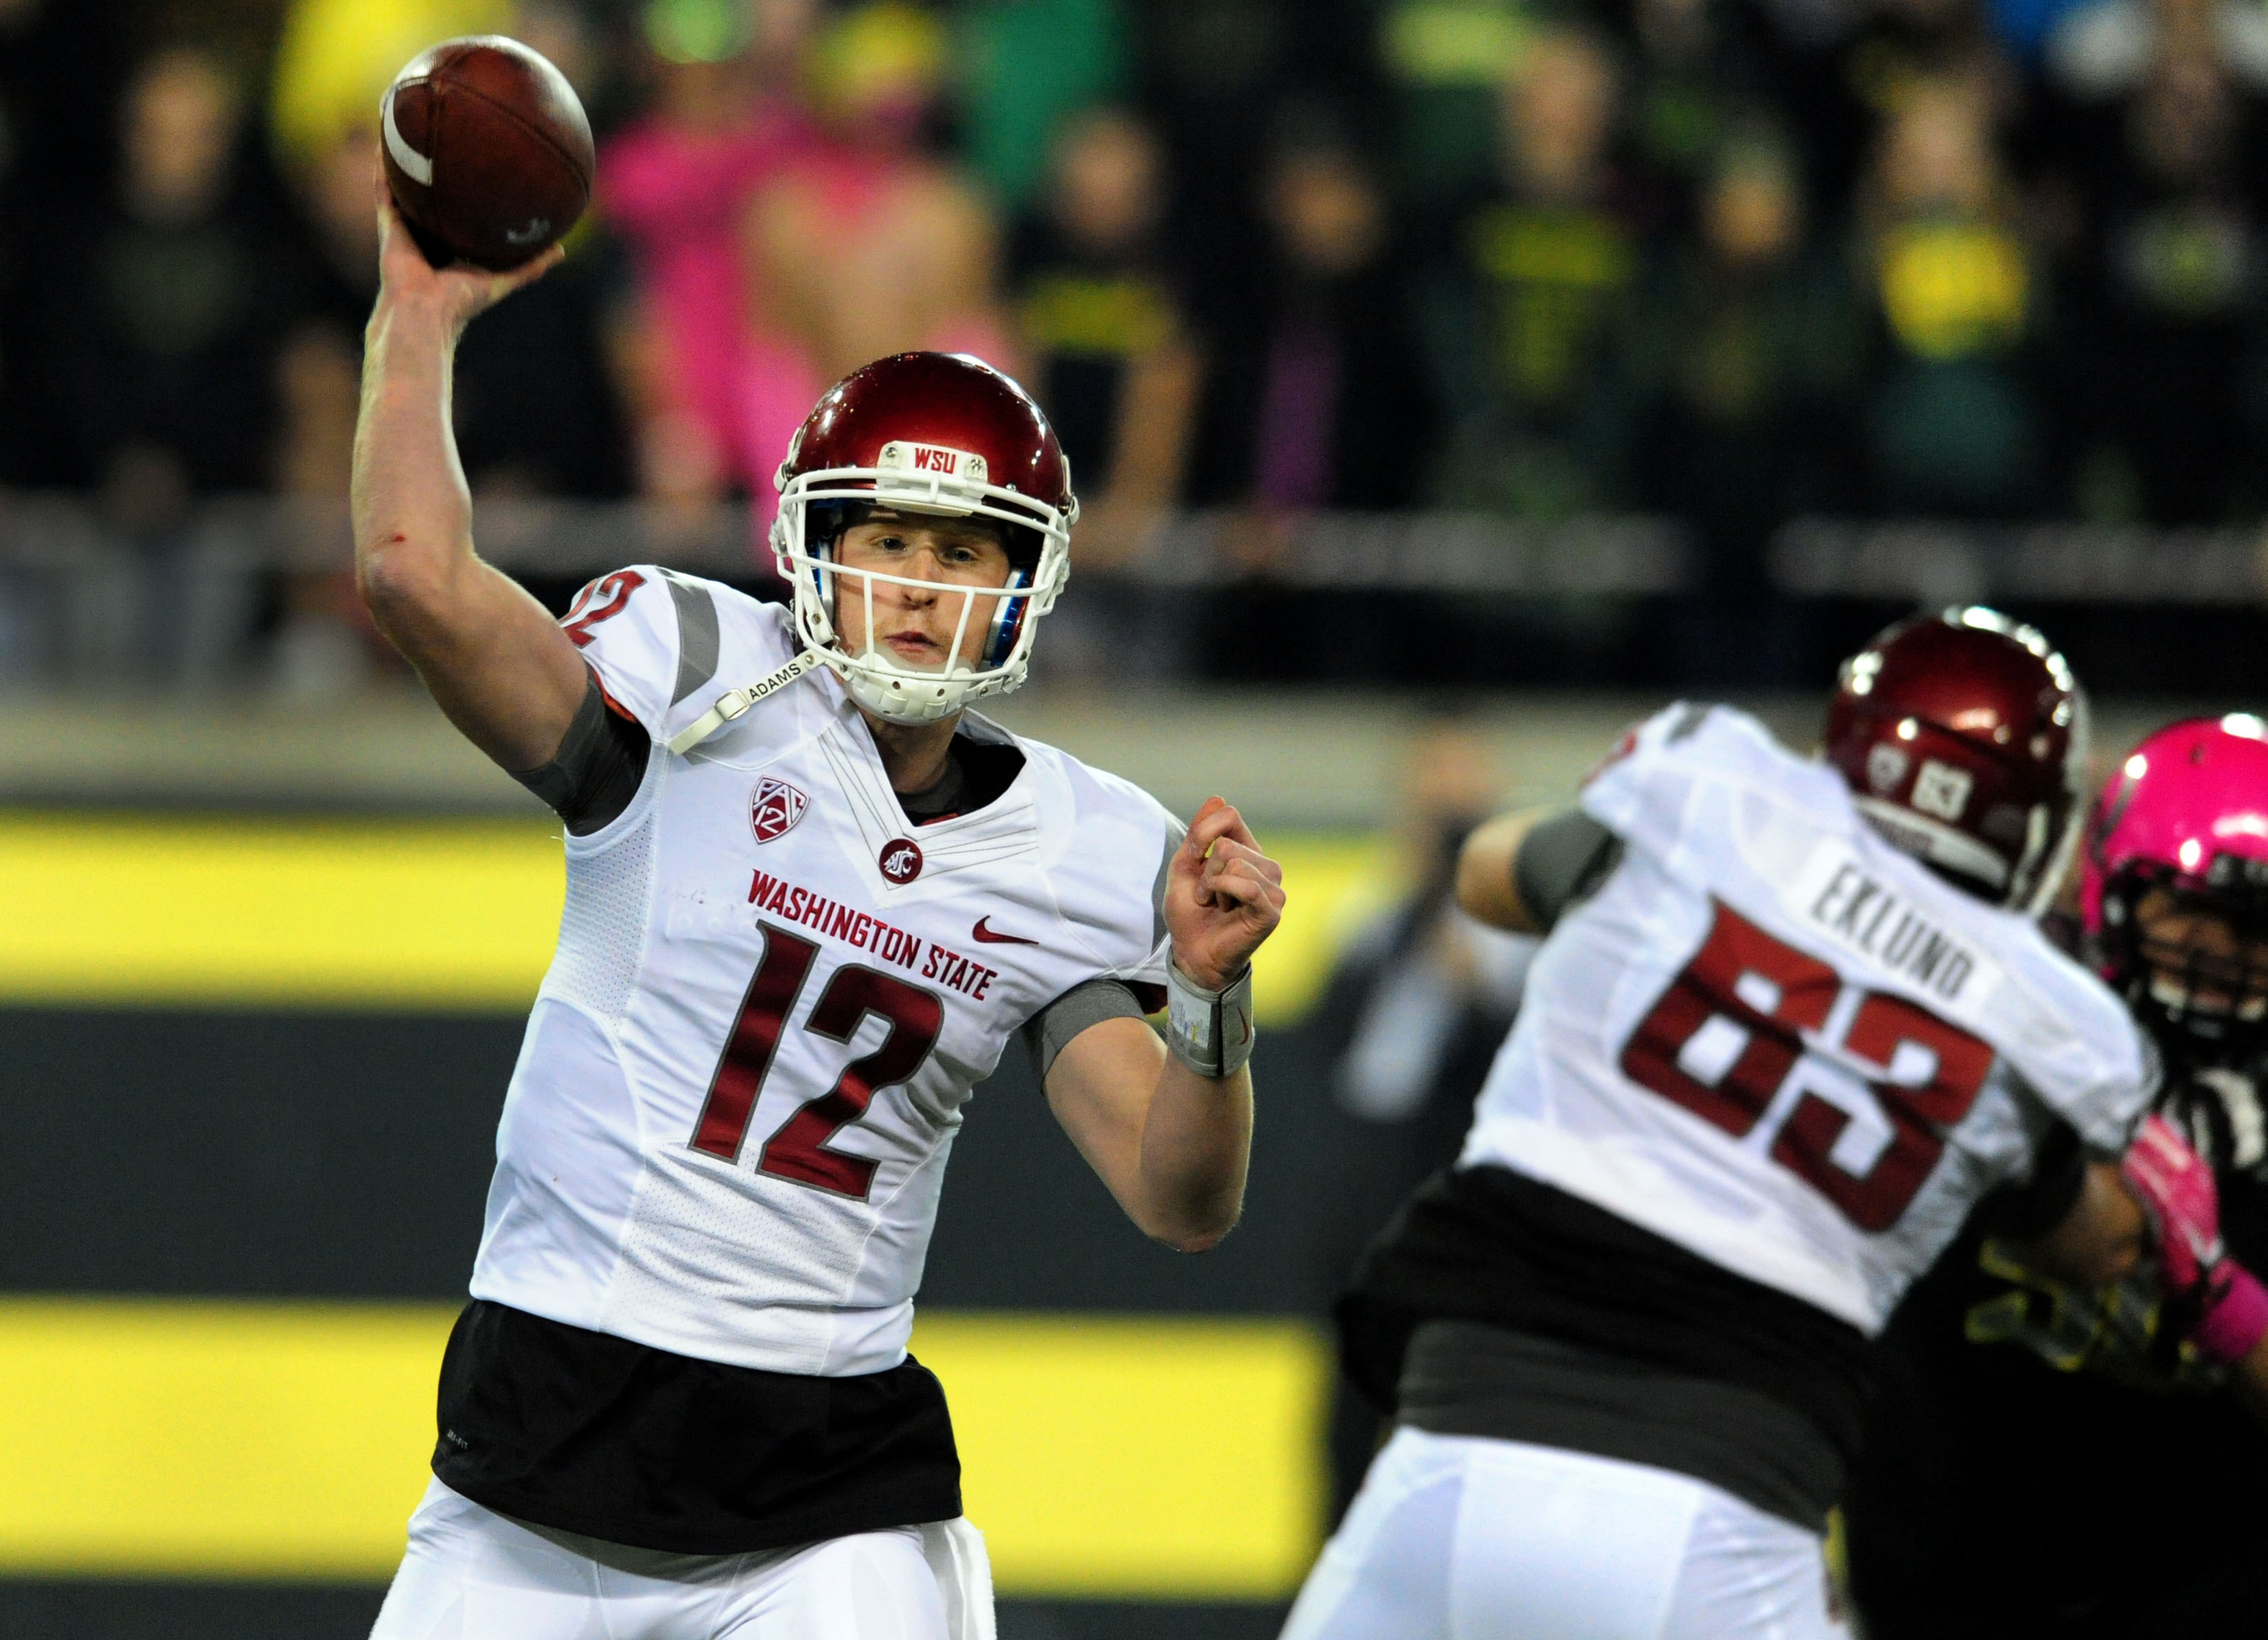 Connor Halliday threw the ball an NCAA-record 89 times. Nick Aliotti was not pleased.